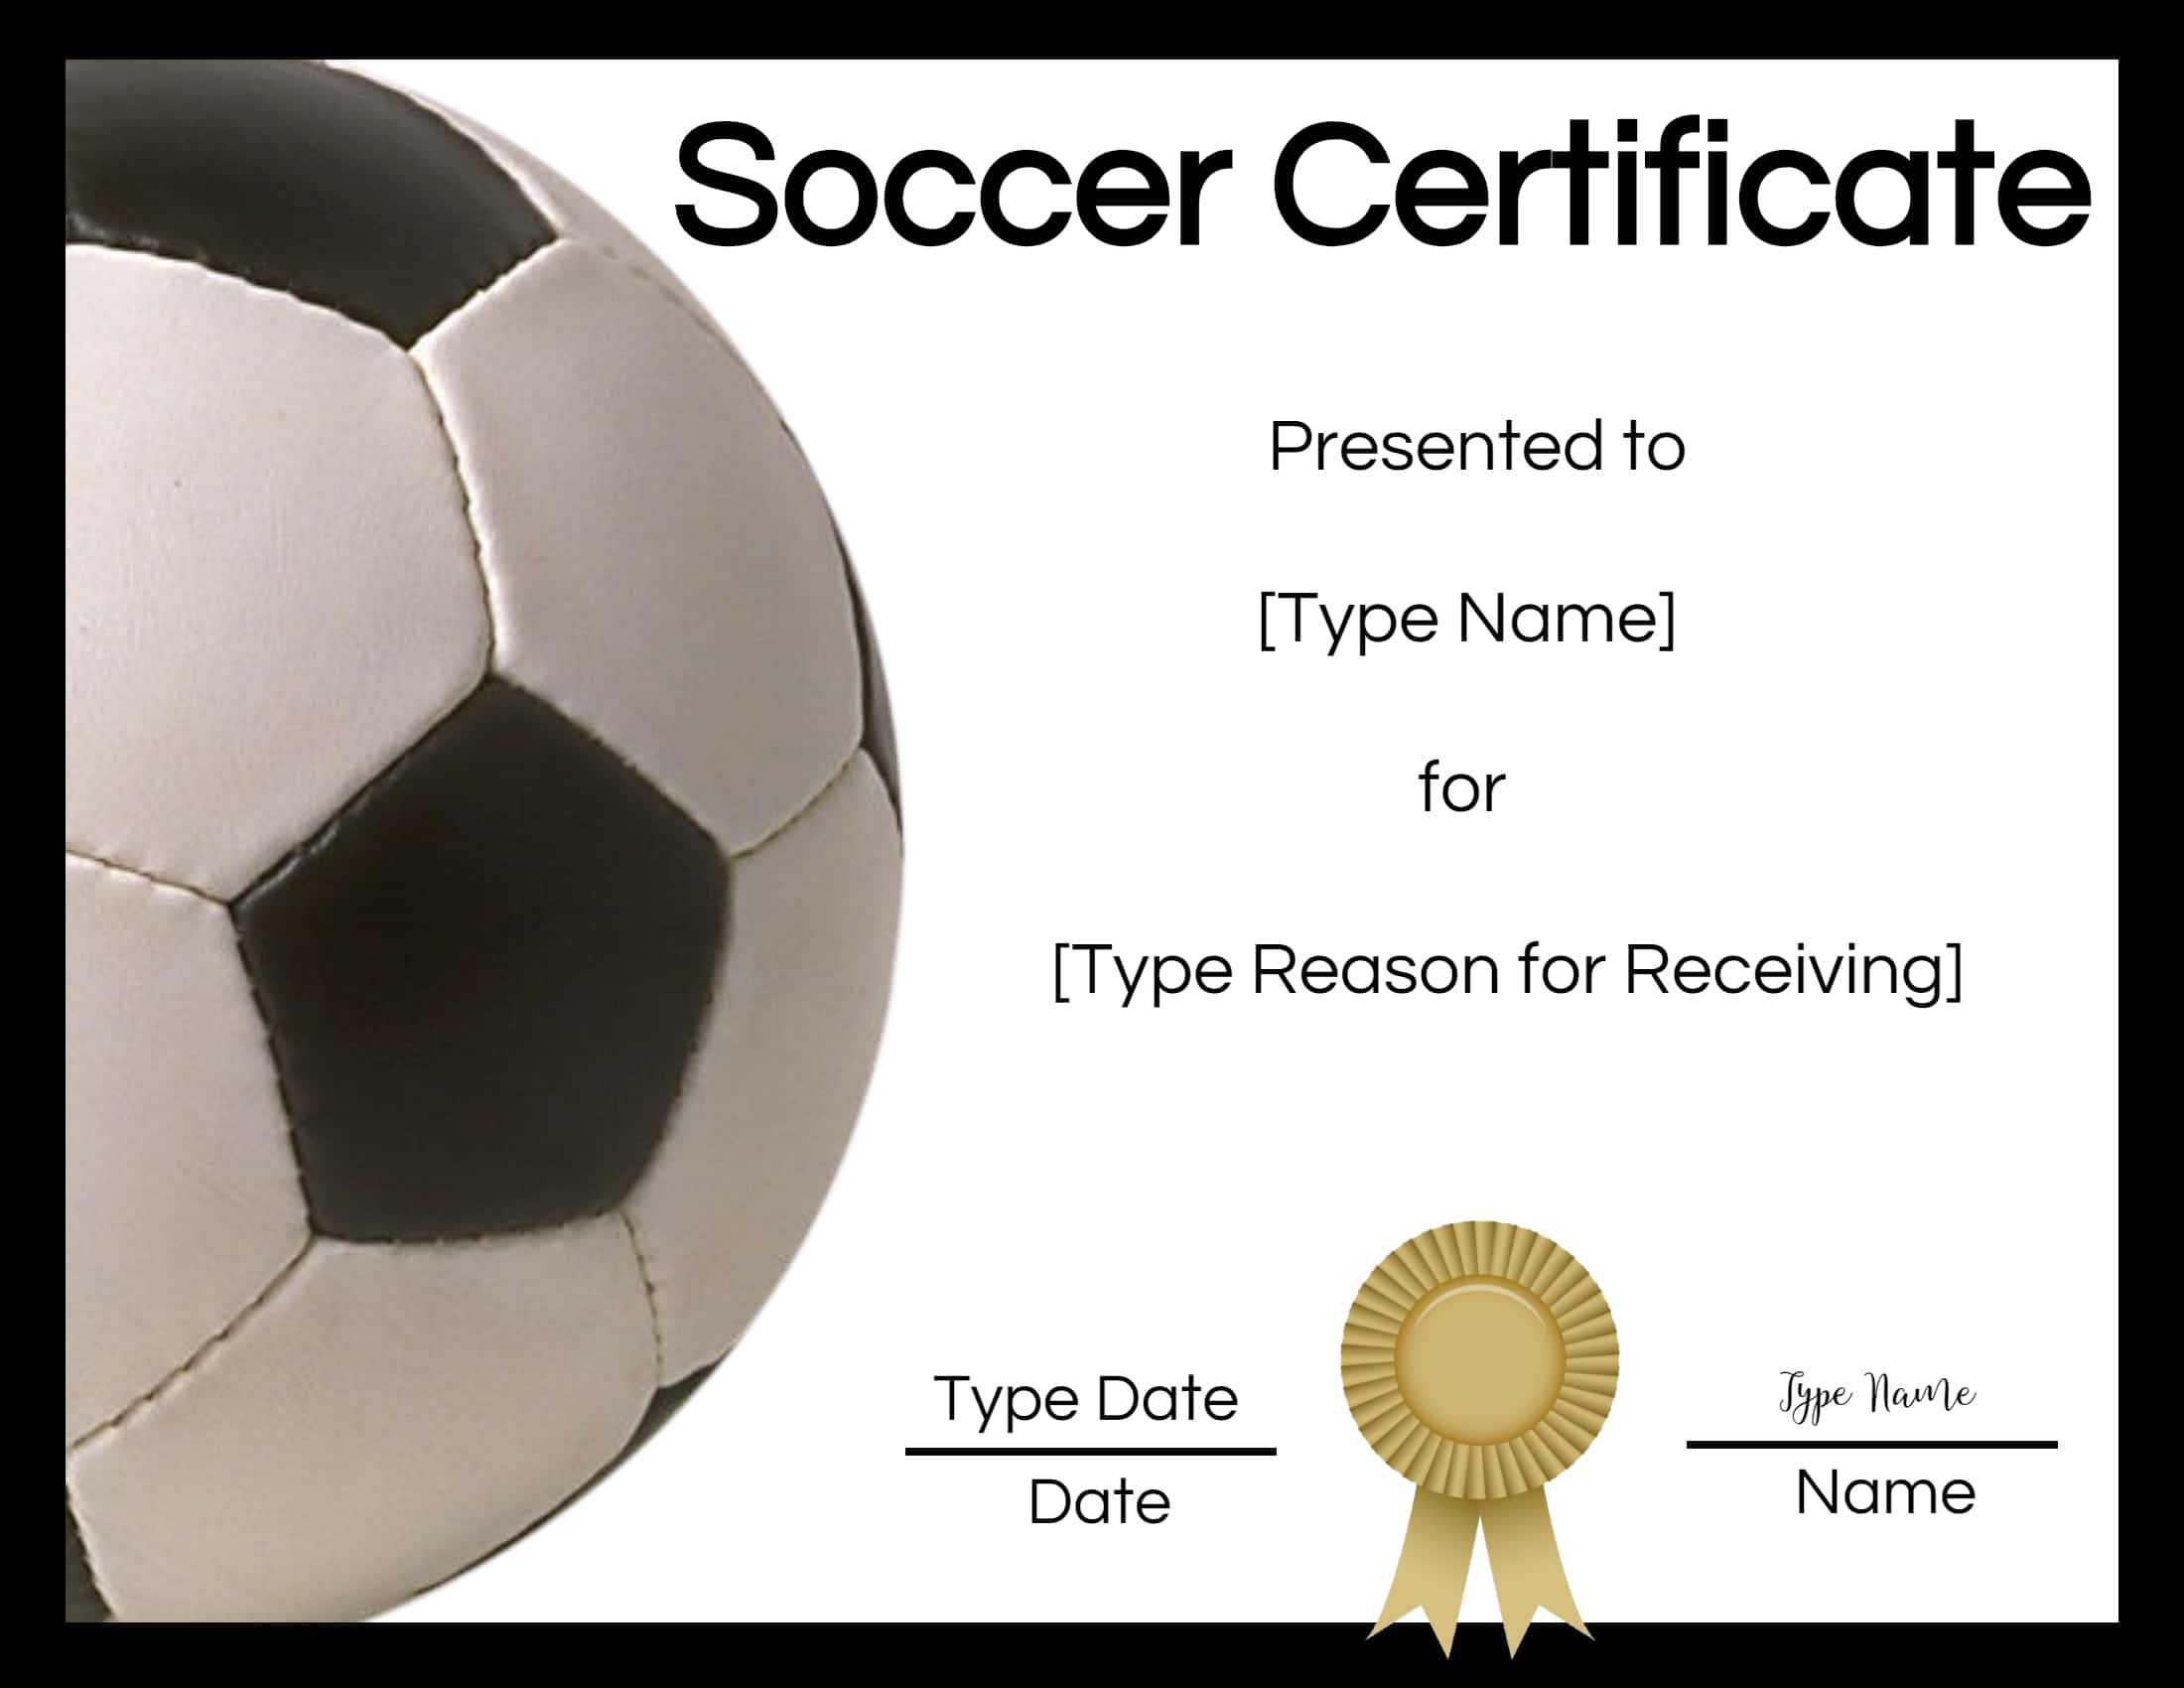 Free Soccer Certificate Maker Edit Online And Print At Home